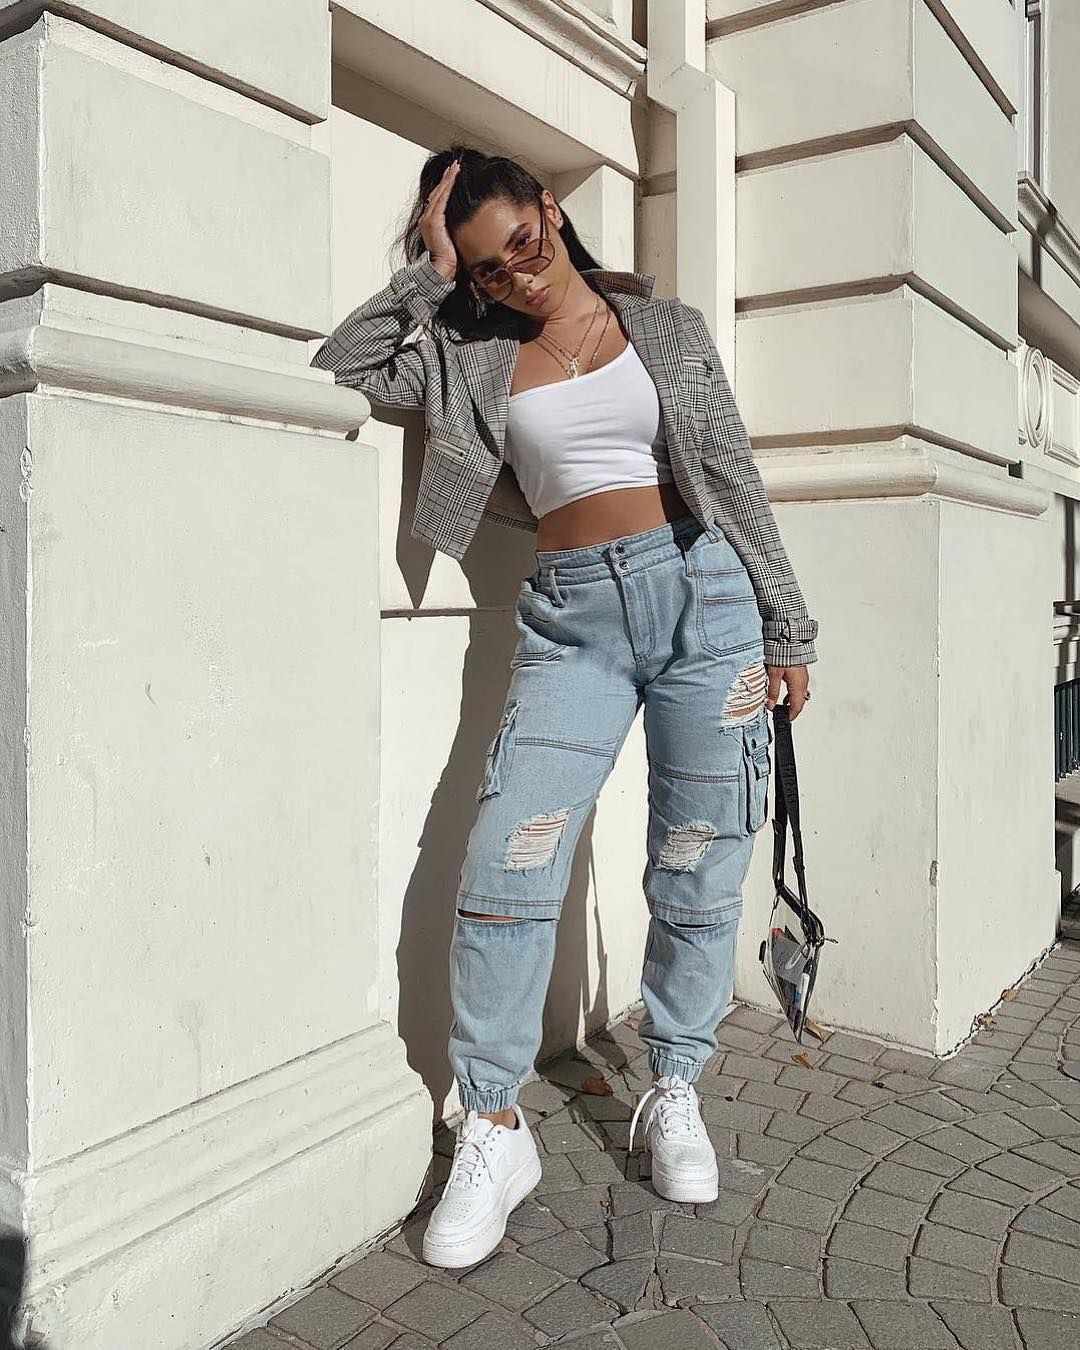 """Manière De Voir on Instagram: """"Cargo styles, with hand distressed tears ⚔ @xanetia_unnarae wears the Denim Distressed Carg… 